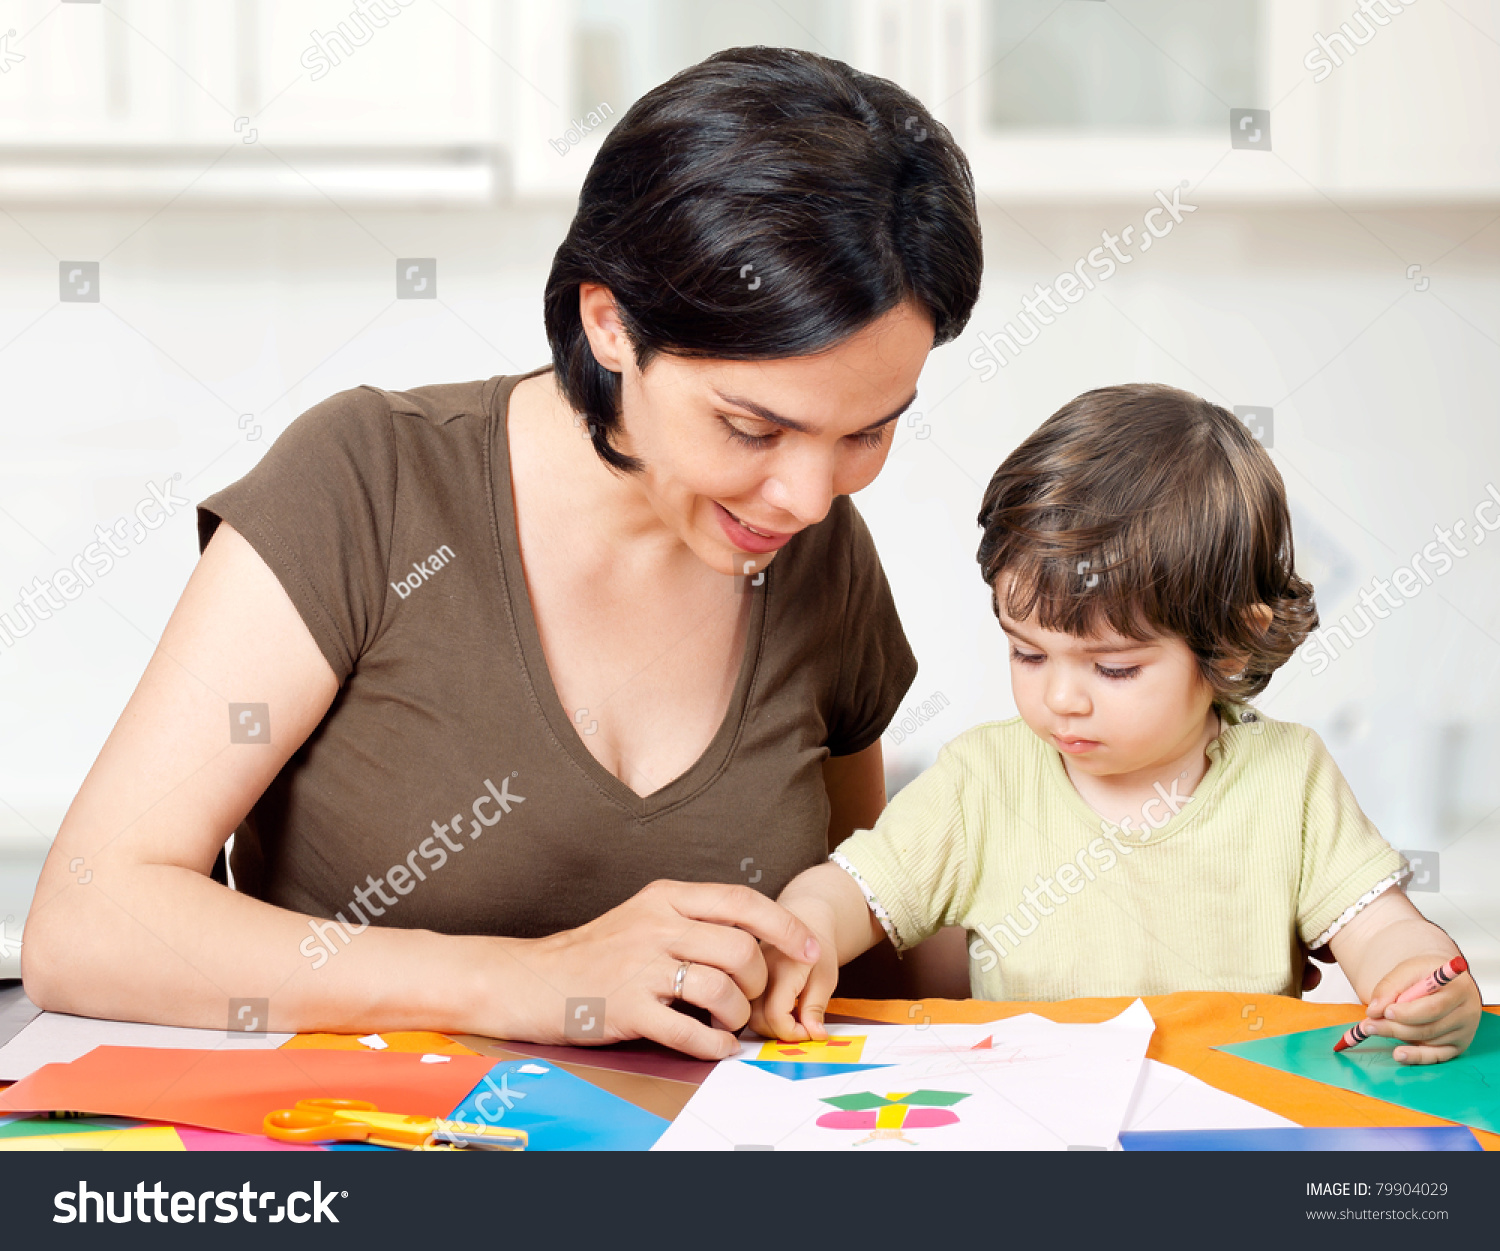 Beautiful Mother Daughter Making Drawing Stock Photo 79904029 ...